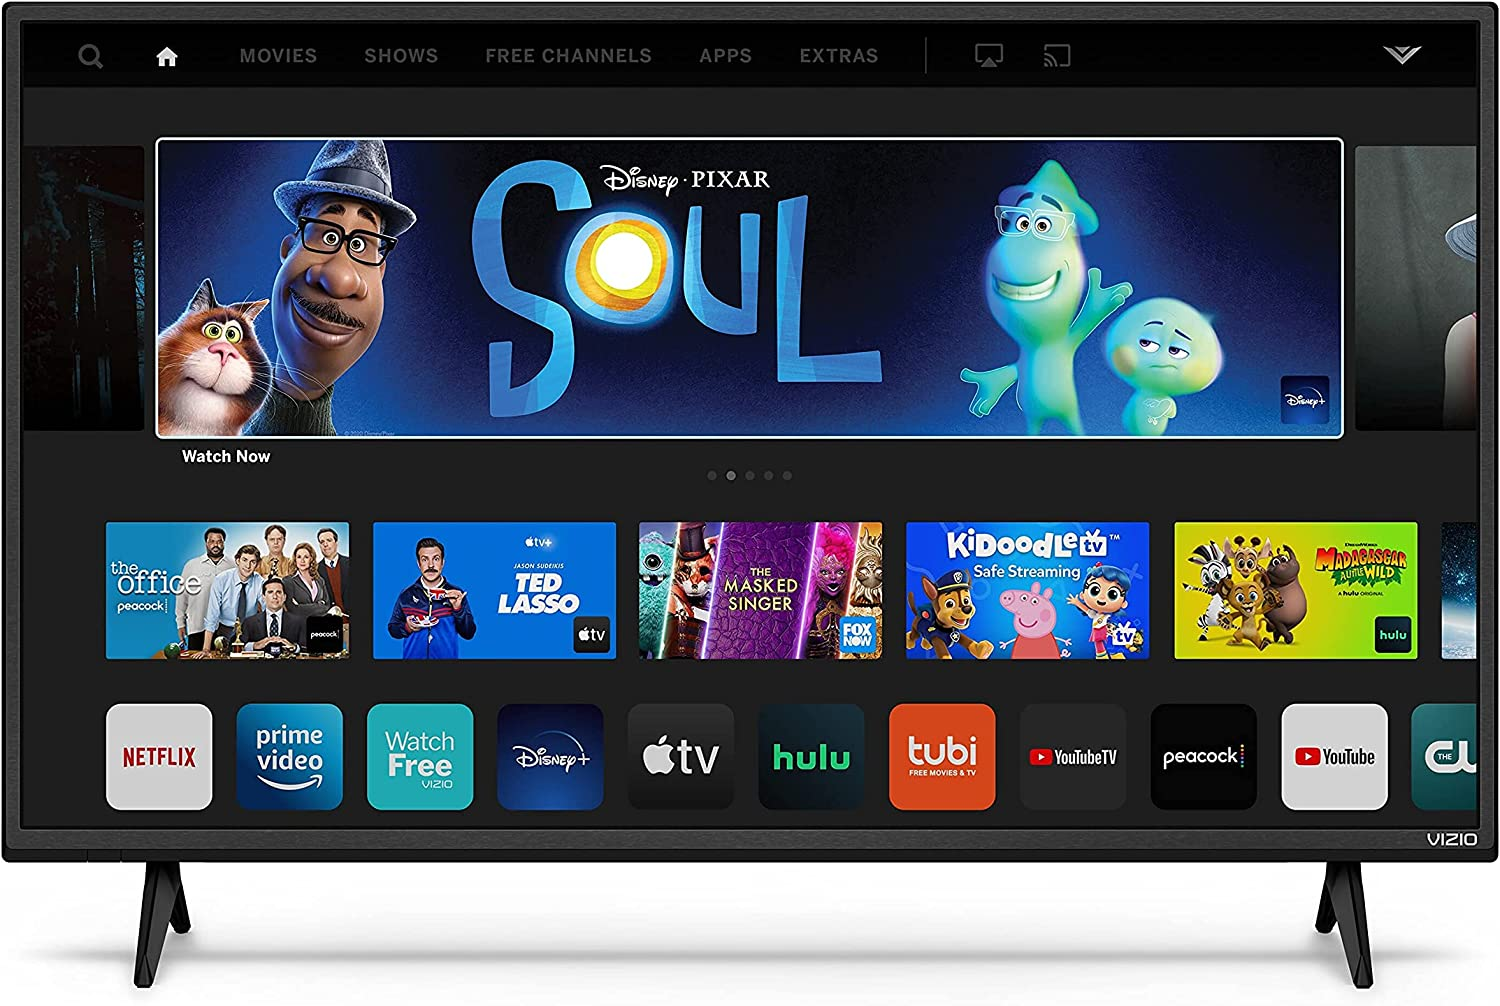 VIZIO 40-inch D-Series Max 41% OFF Full Super special price HD 1080p Apple with Smart AirPlay TV